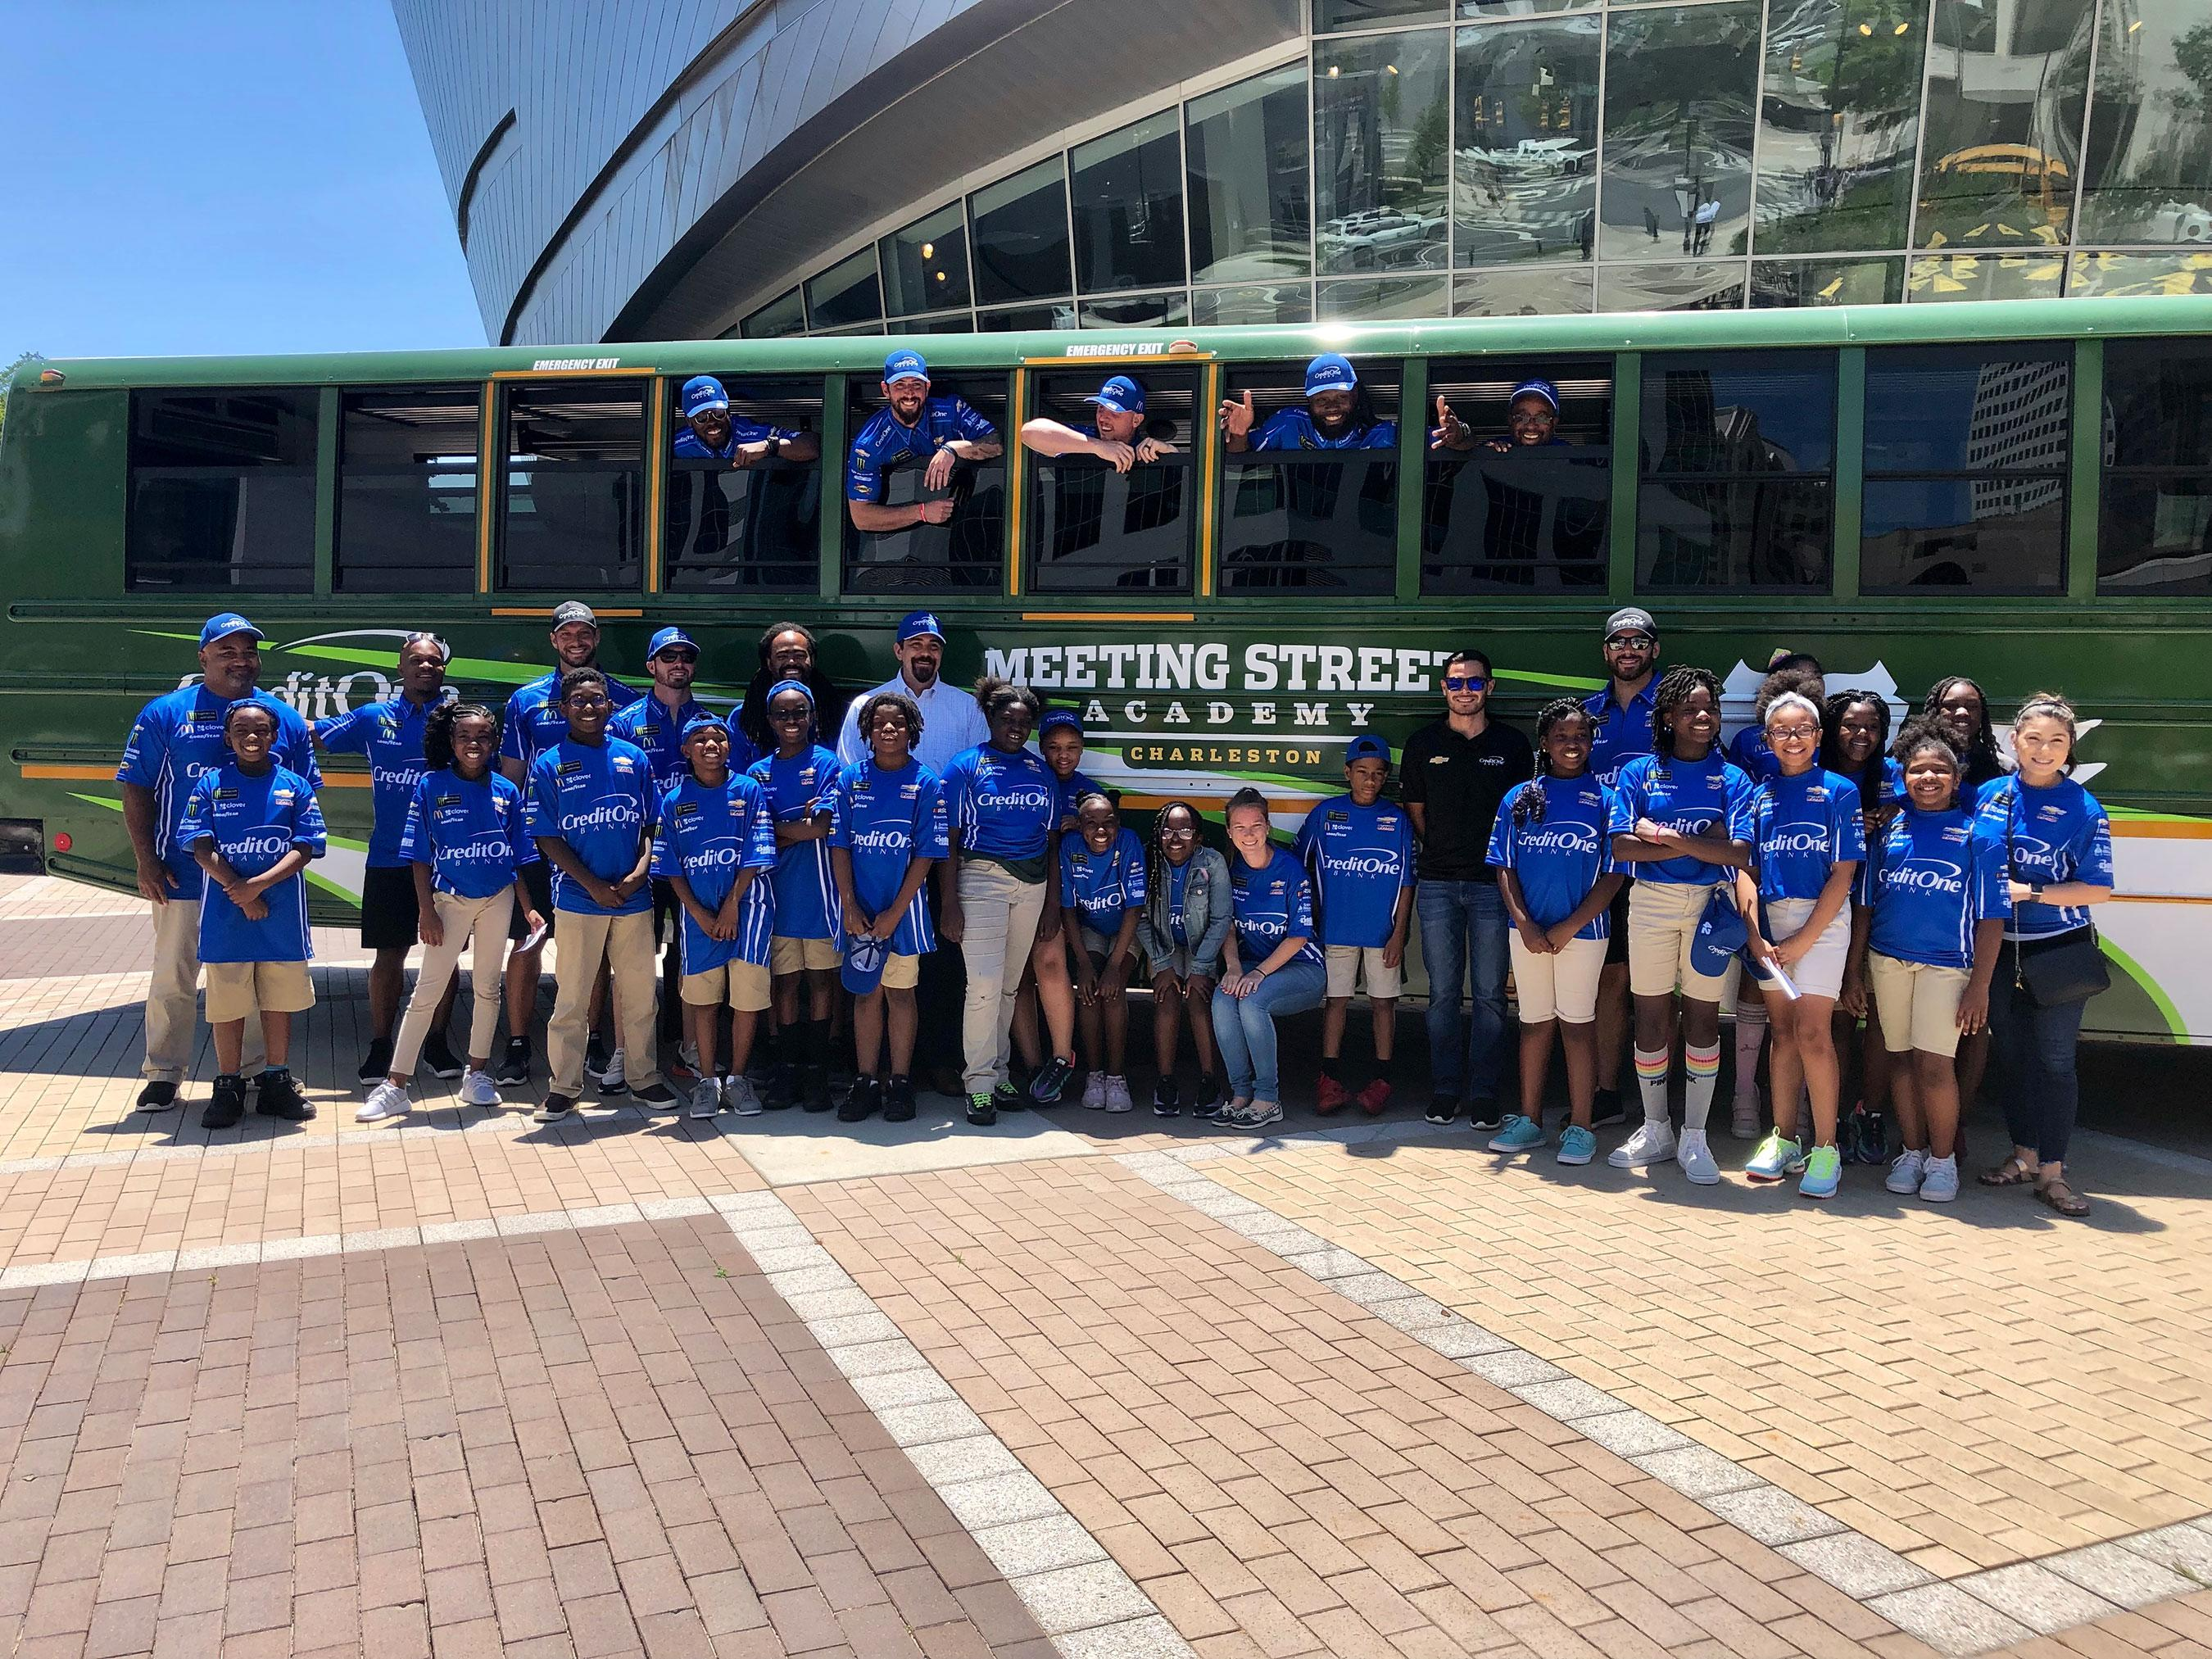 Credit One Bank® and NASCAR Driver Kyle Larson Surprised Meeting Street Academy Students With Field Trip And Custom-Designed Bus